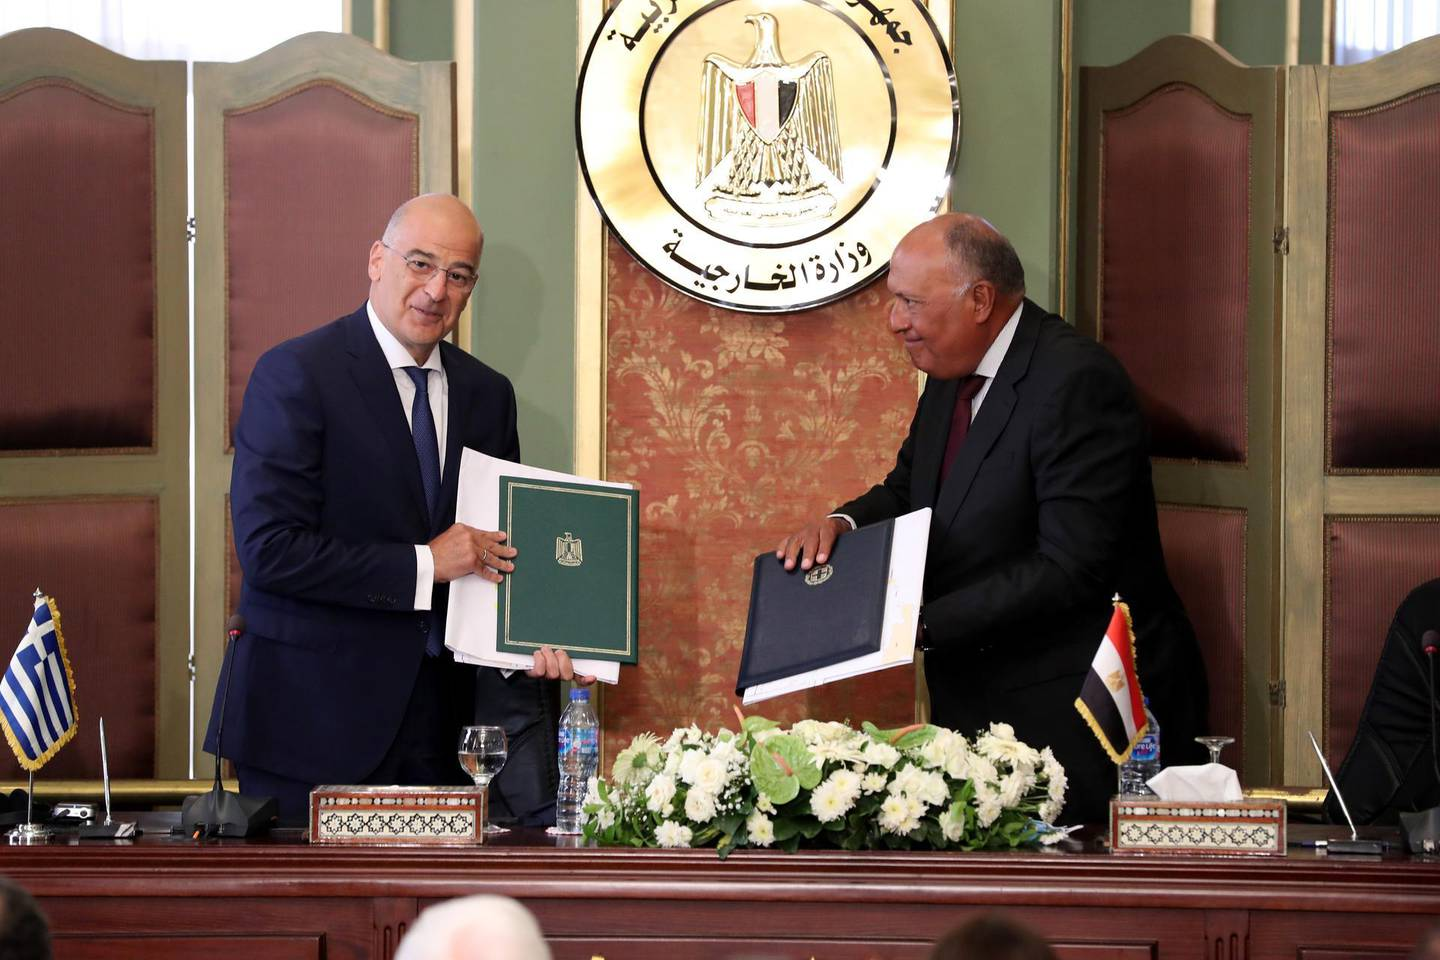 epa08587694 Greek Foreign Minister Nikos Dendias (L) and Egyptian Foreign Minister Sameh Shoukry (R) hold up signed documents after signing maritime border agreement in Cairo, Egypt, 06 August 2020. Egypt and Greece on 06 August signed an agreement to demarcate the maritime borders between the two countries.  EPA/KHALED ELFIQI